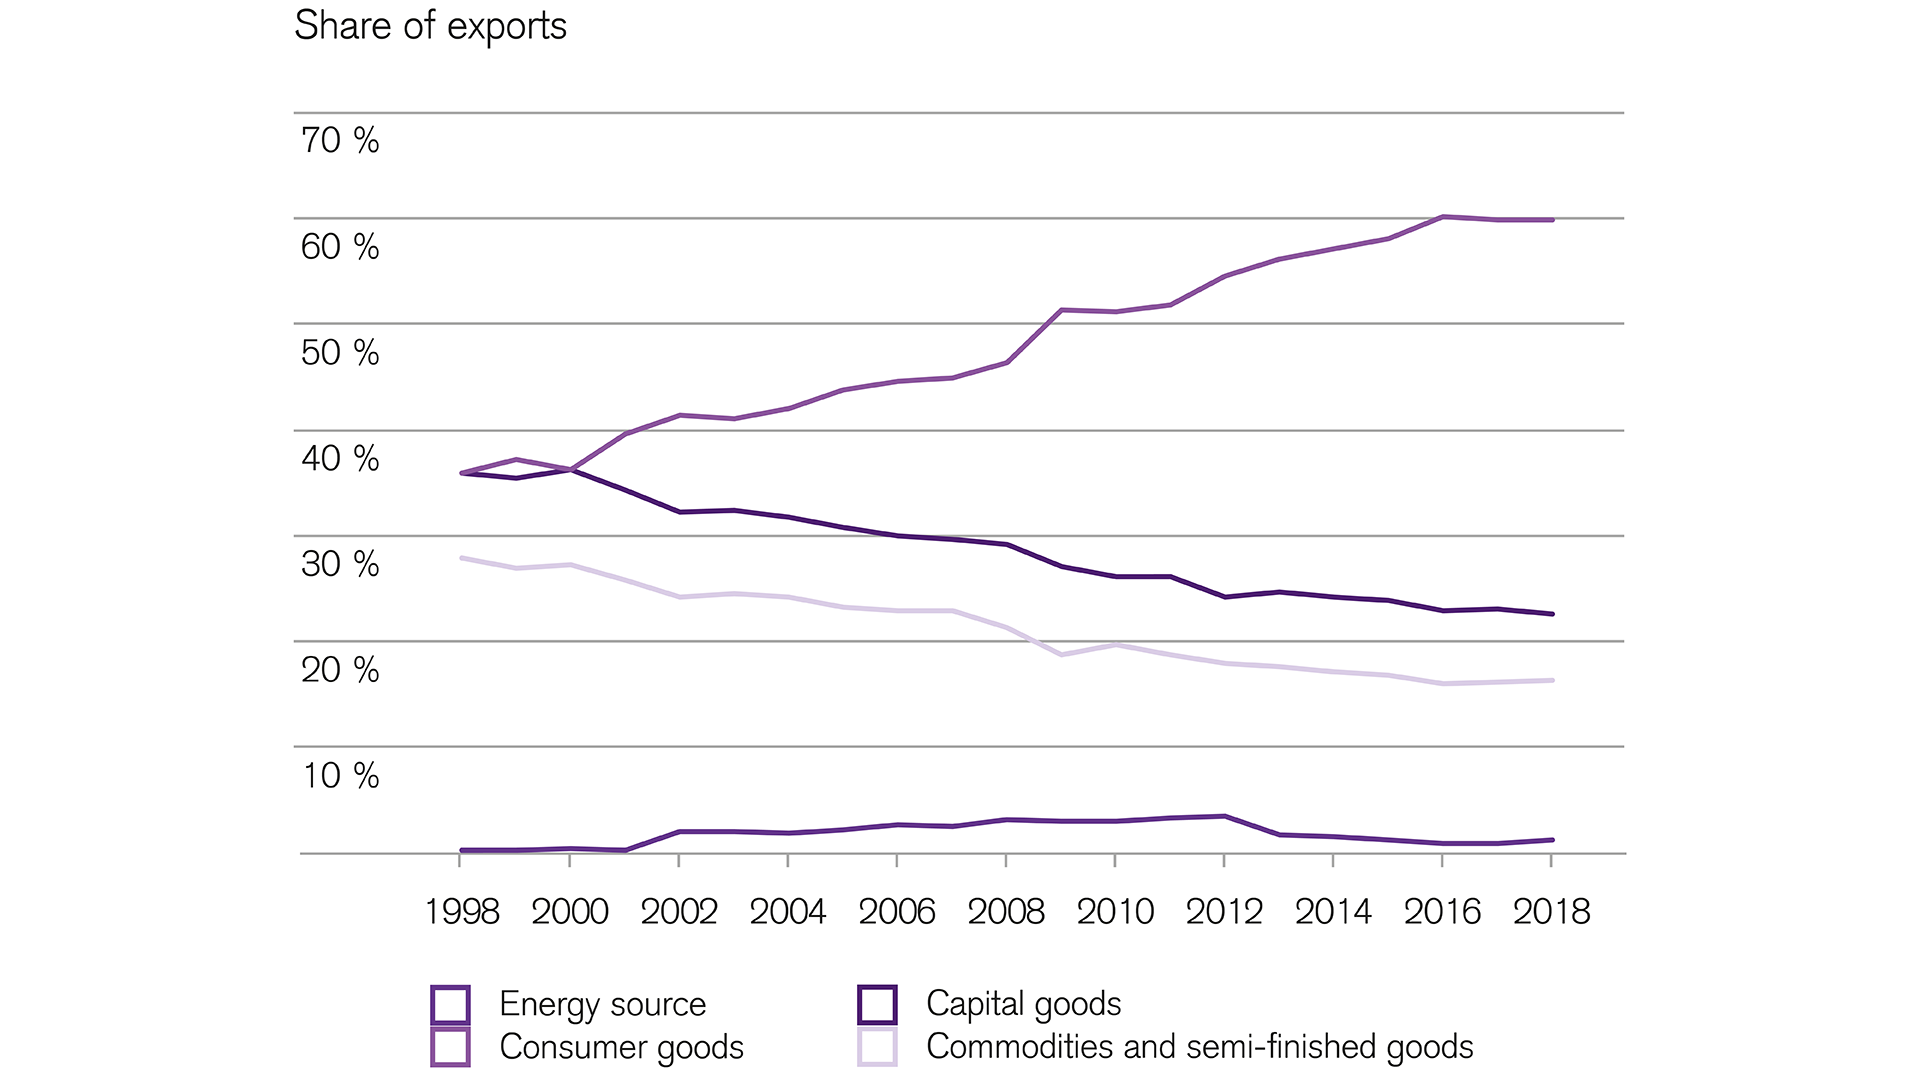 Consumer goods account for rising share in Swiss export volume